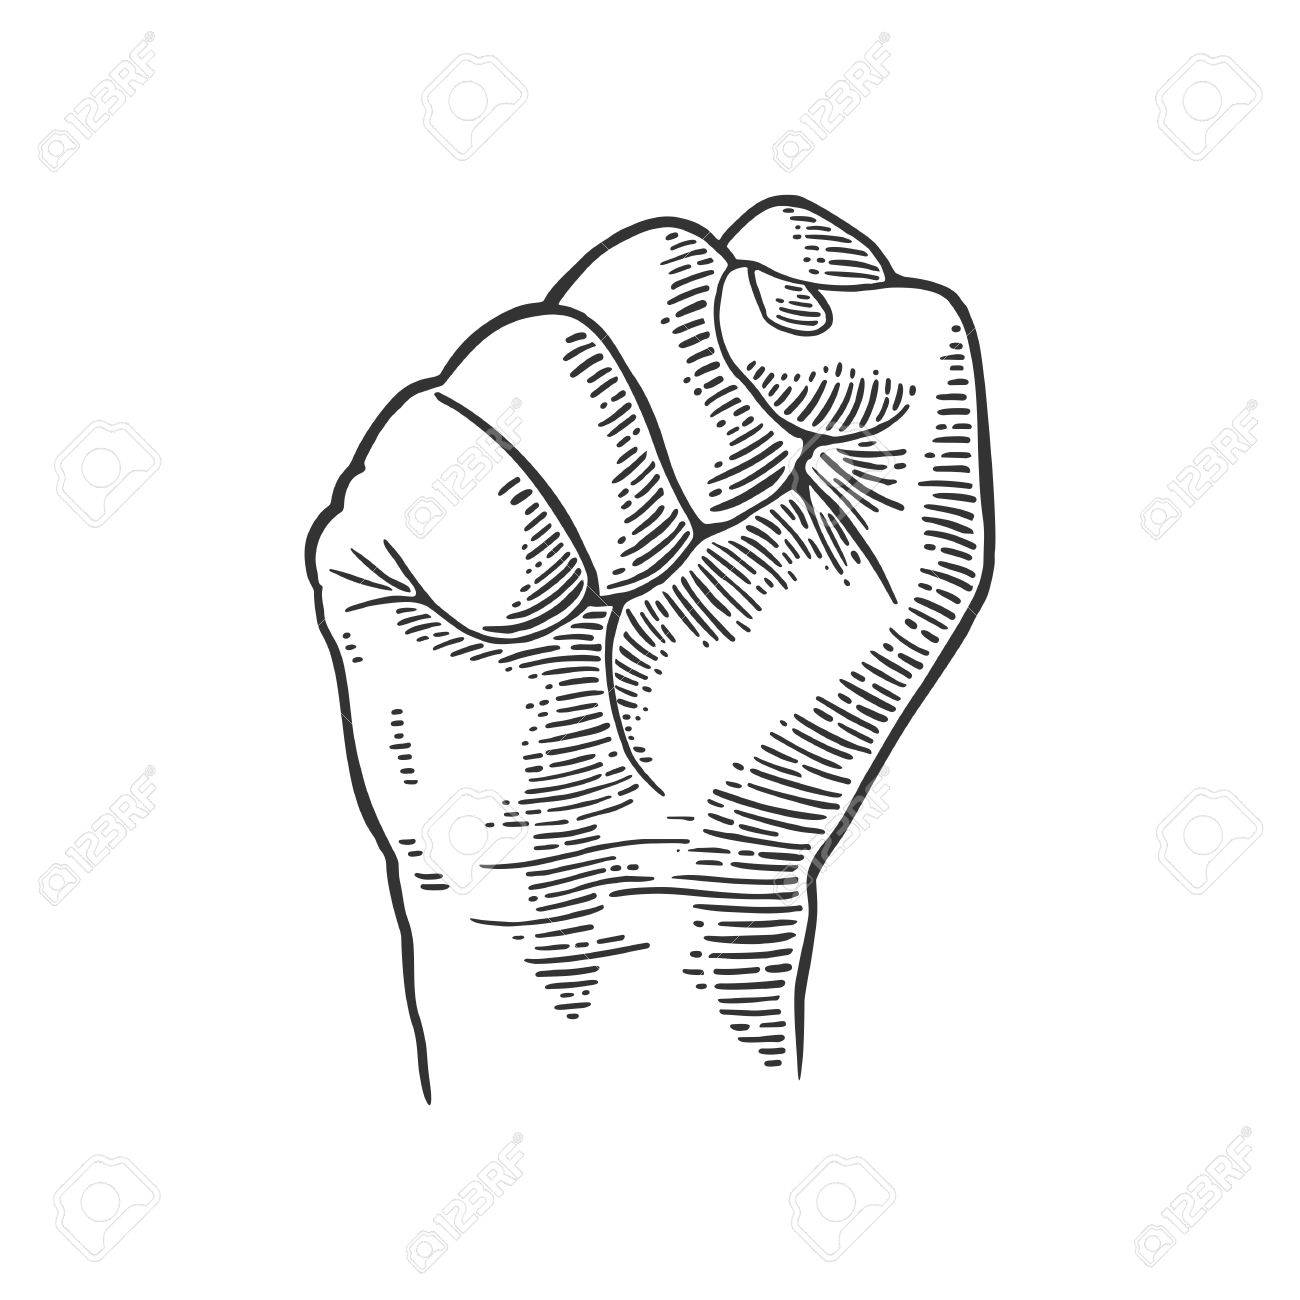 1300x1300 Human Hand With A Clenched Fist. Vector Black Vintage Engraved